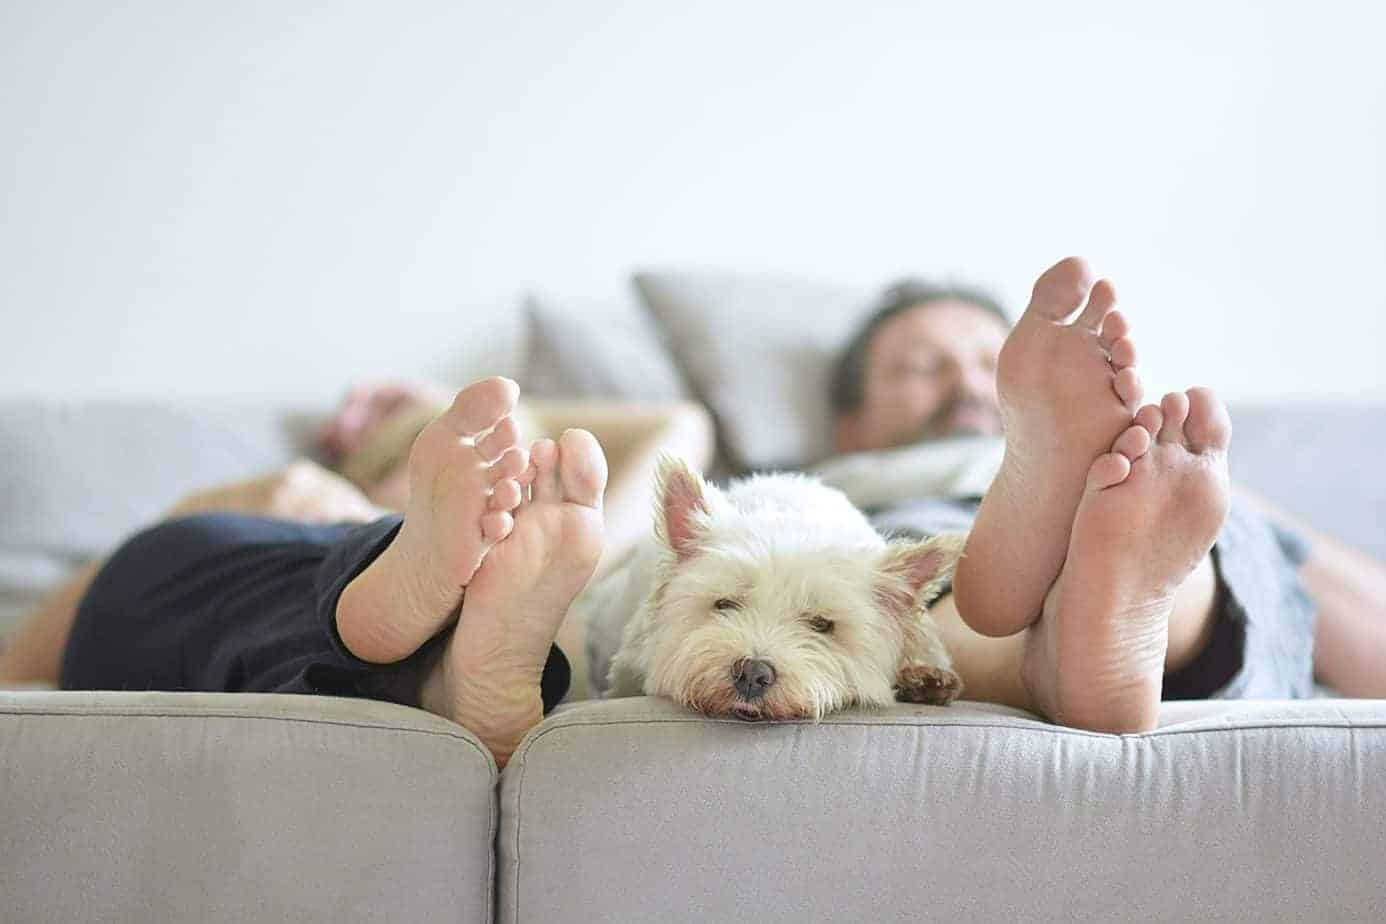 Sleepy Westie snuggles between owners. Pet foster parents help change an animal's future. Some homeless pets have endured abuse, neglect, or cruelty. Fostering helps them heal.